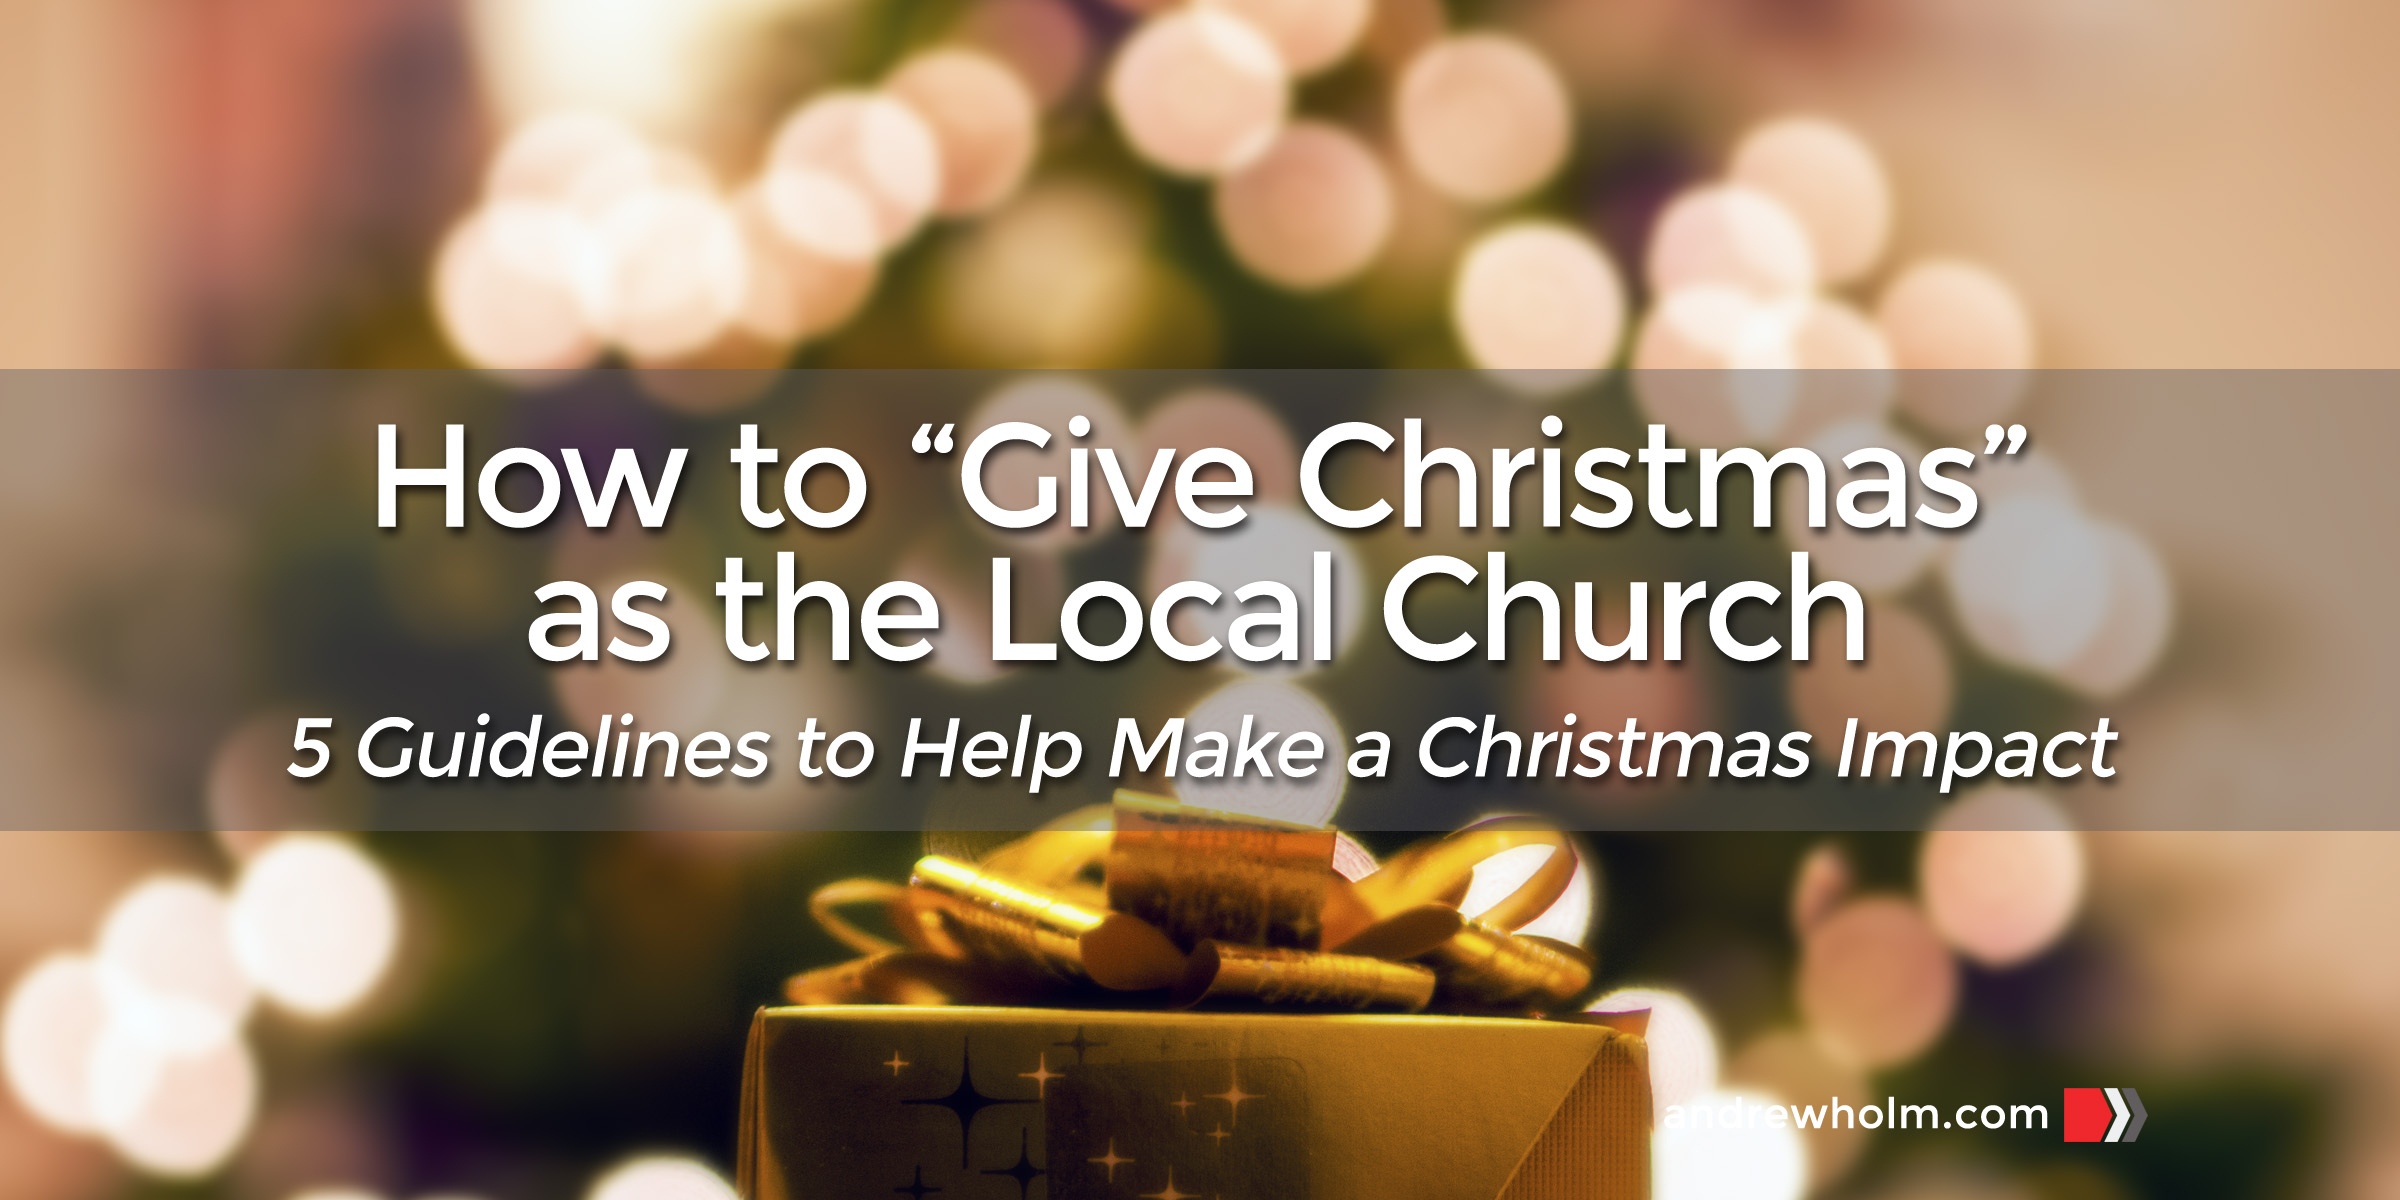 How to Start a Christmas Campaign As the Local Church